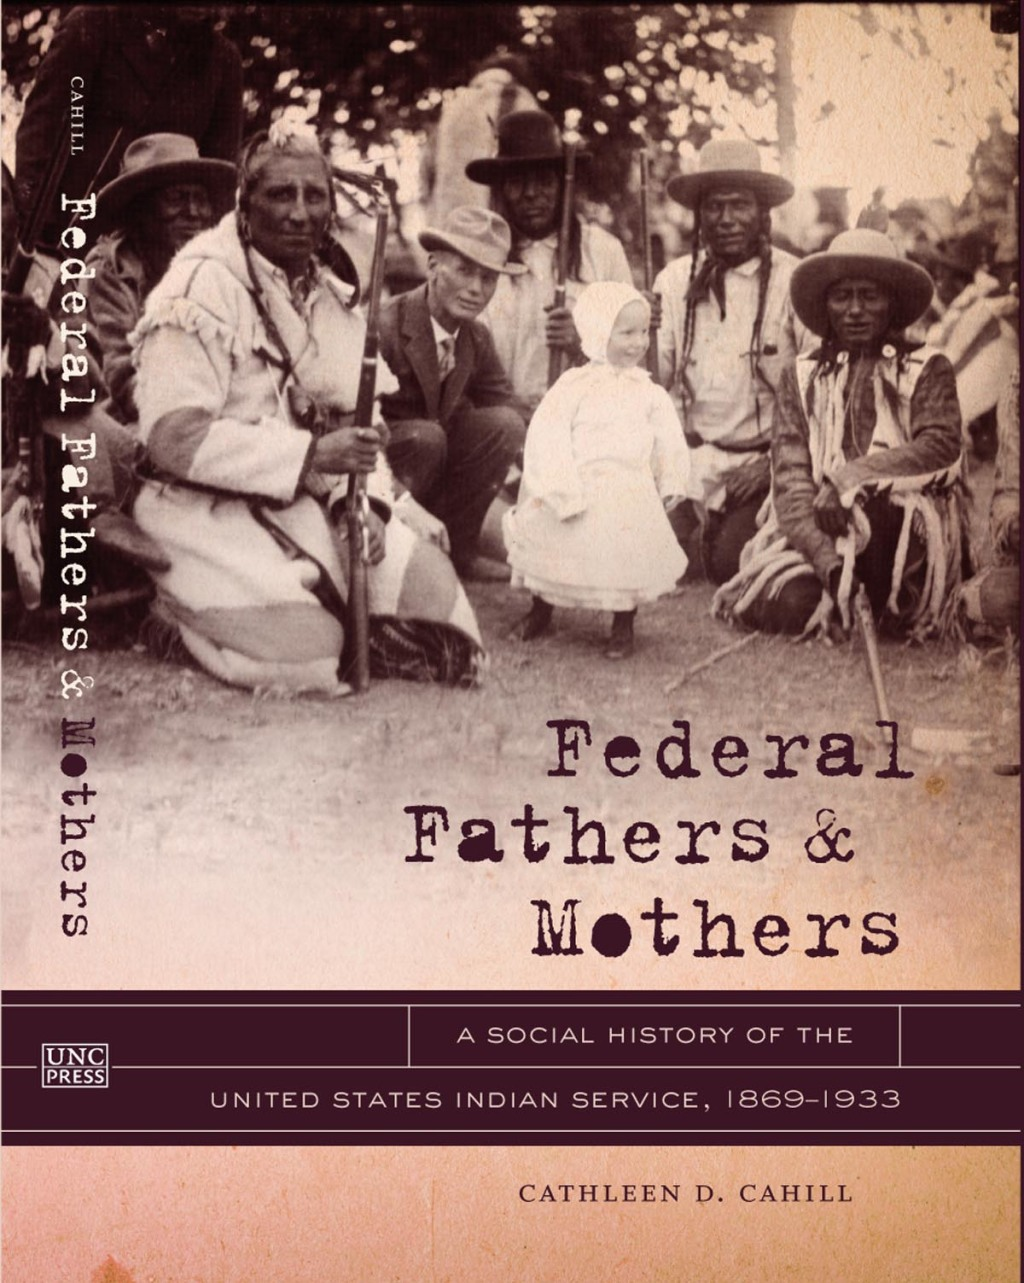 Federal Fathers and Mothers: A Social History of the United States Indian Service, 1869-1933 (ebook) eBooks